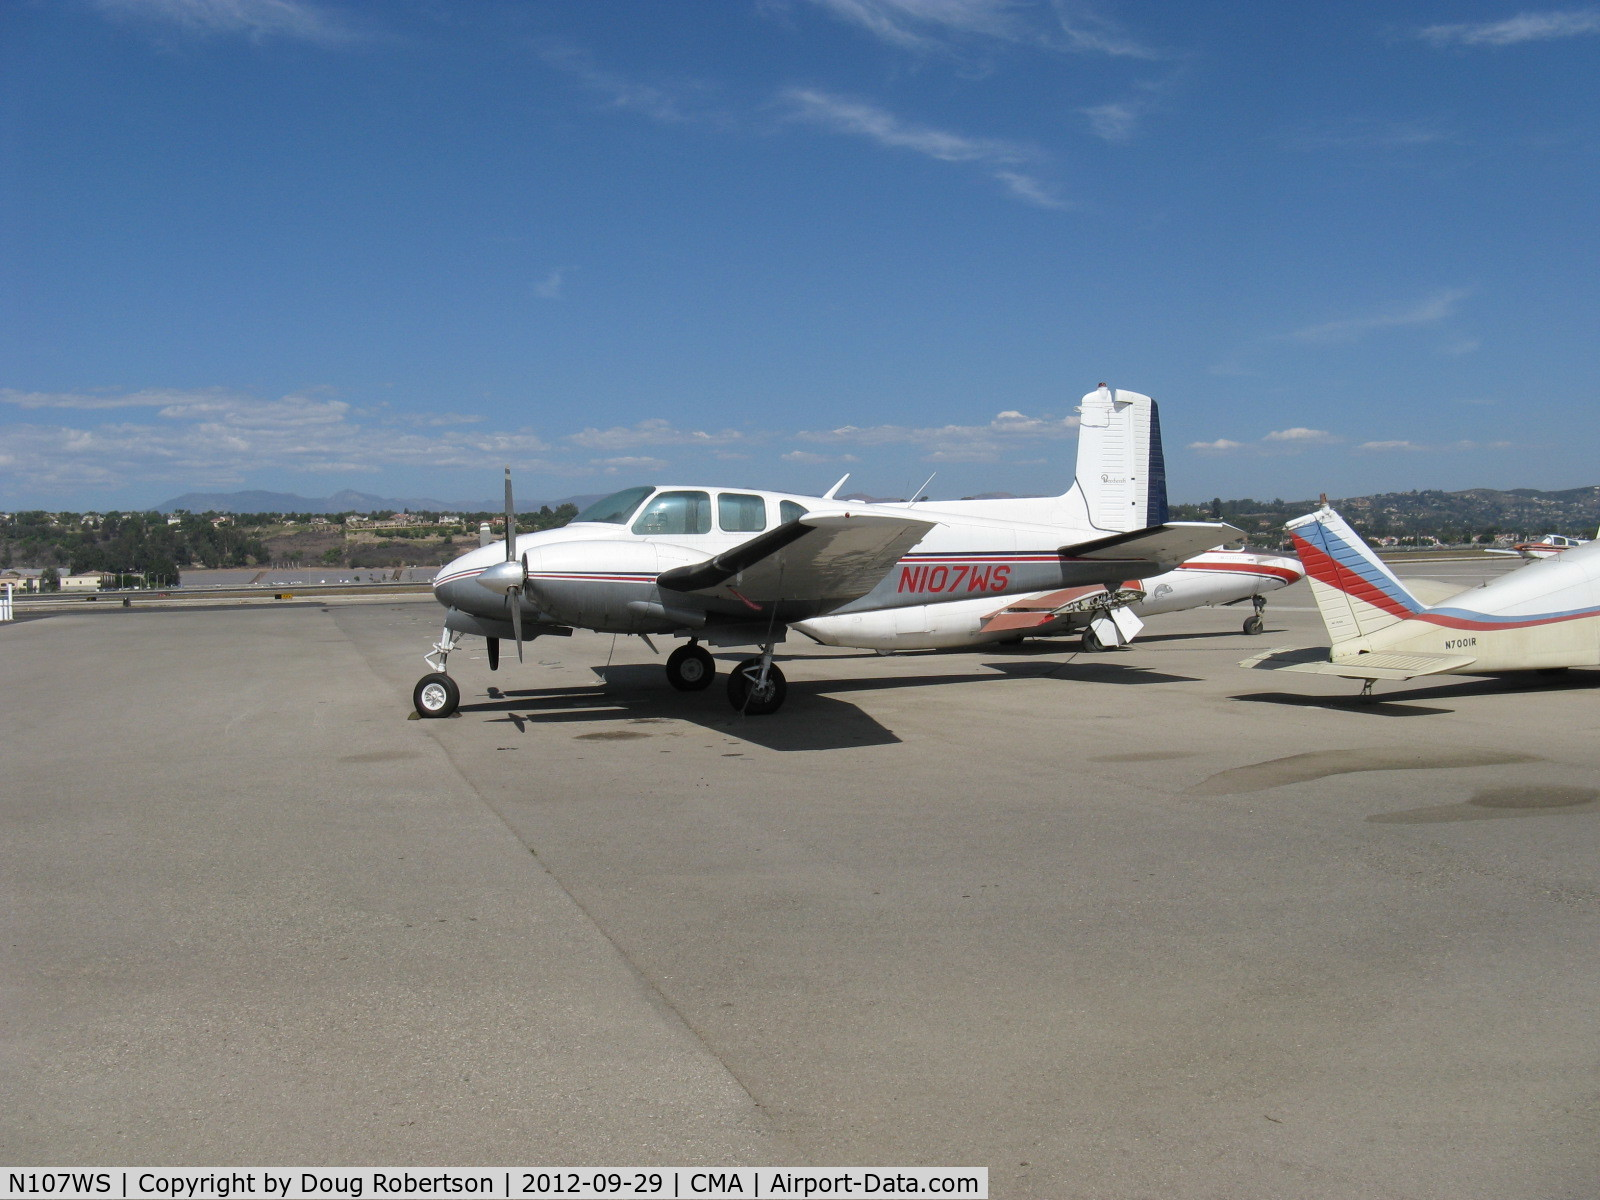 N107WS, 1959 Beech G50 C/N GH-107, 1959 Beech G50 TWIN BONANZA, two Lycoming HIO-360s listed but originally equipped with two Lycoming GSO-480-B1B6 340 Hp geared engines. The HIOs are only 190 Hp each.